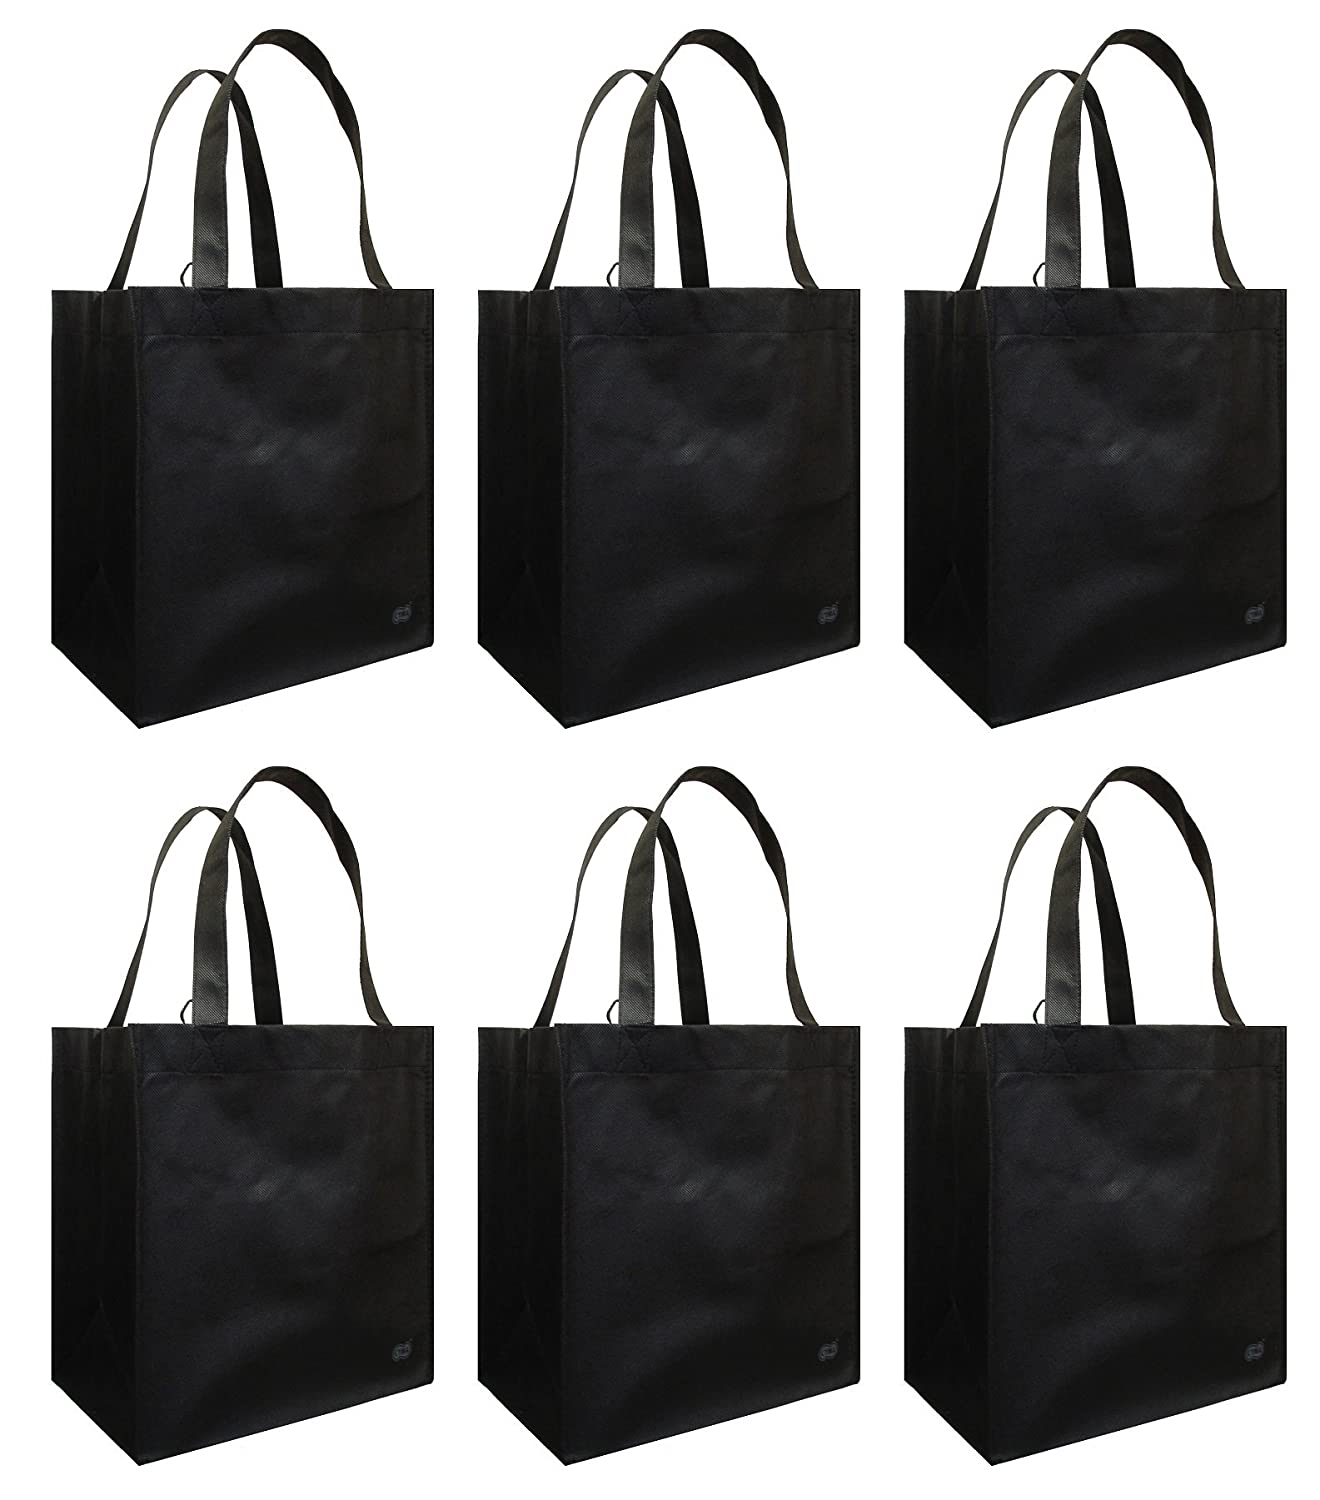 Amazon.com: Reusable Grocery Tote Bag Black 6 Pack: Kitchen & Dining